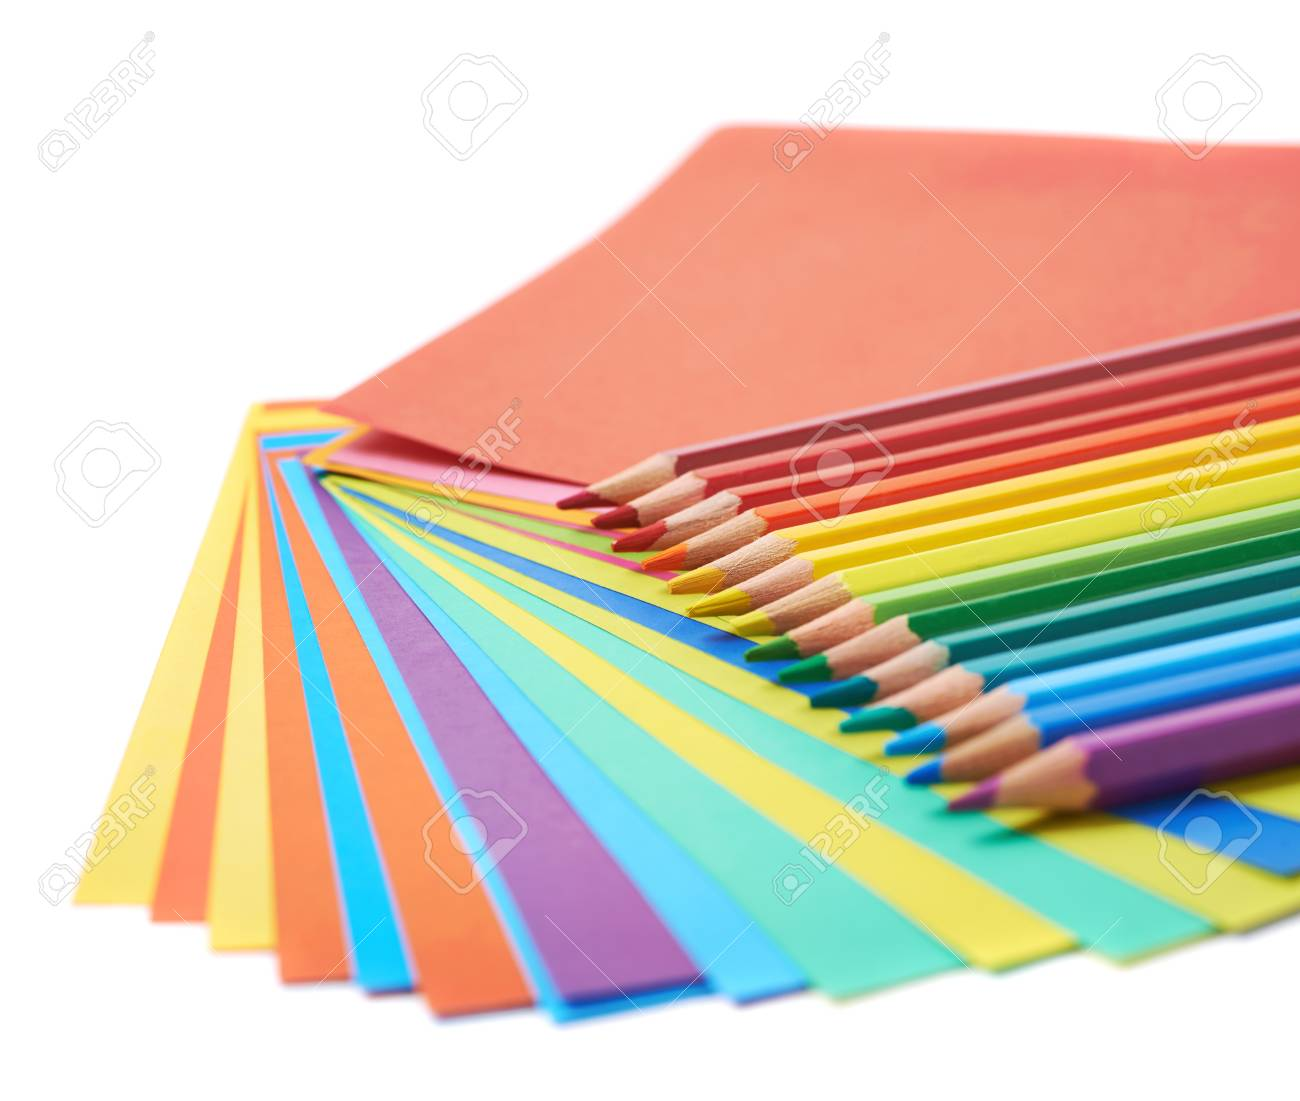 Twisted Pile Of Colorful Paper Sheets With The Multiple Drawing ...